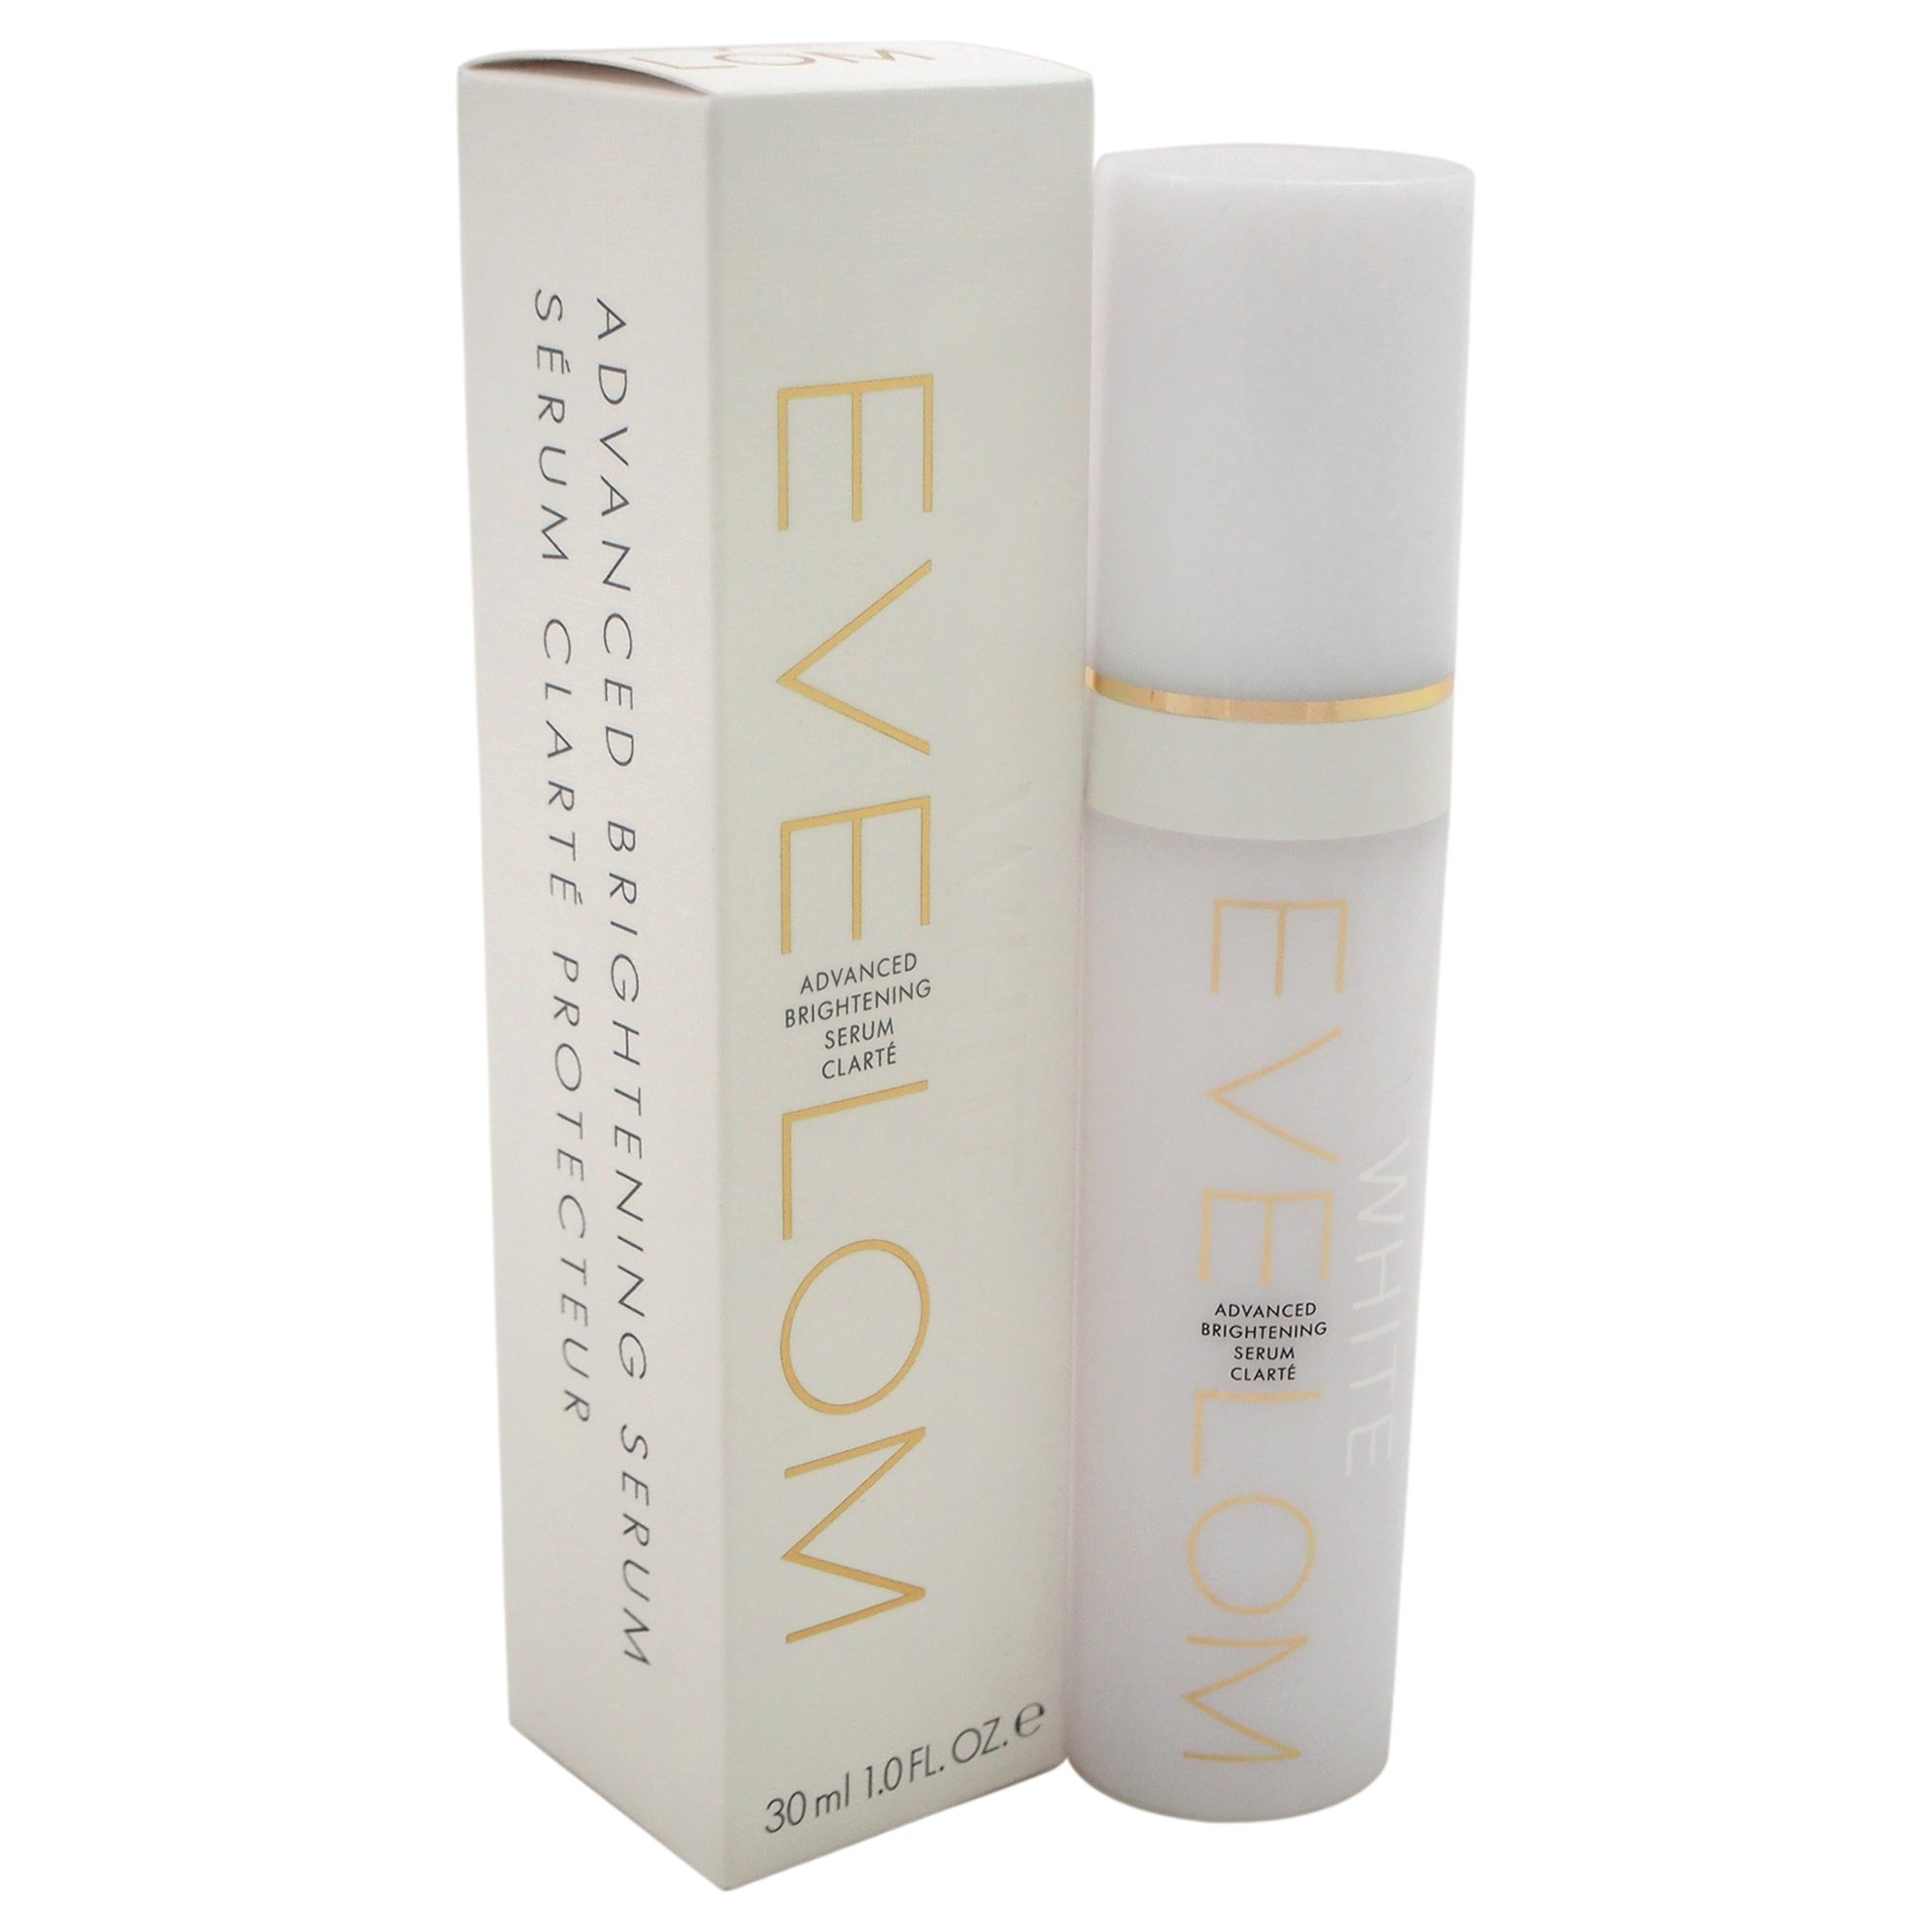 Eve Lom Unisex White Advanced Brightening Serum, 1 Ounce by Eve Lom